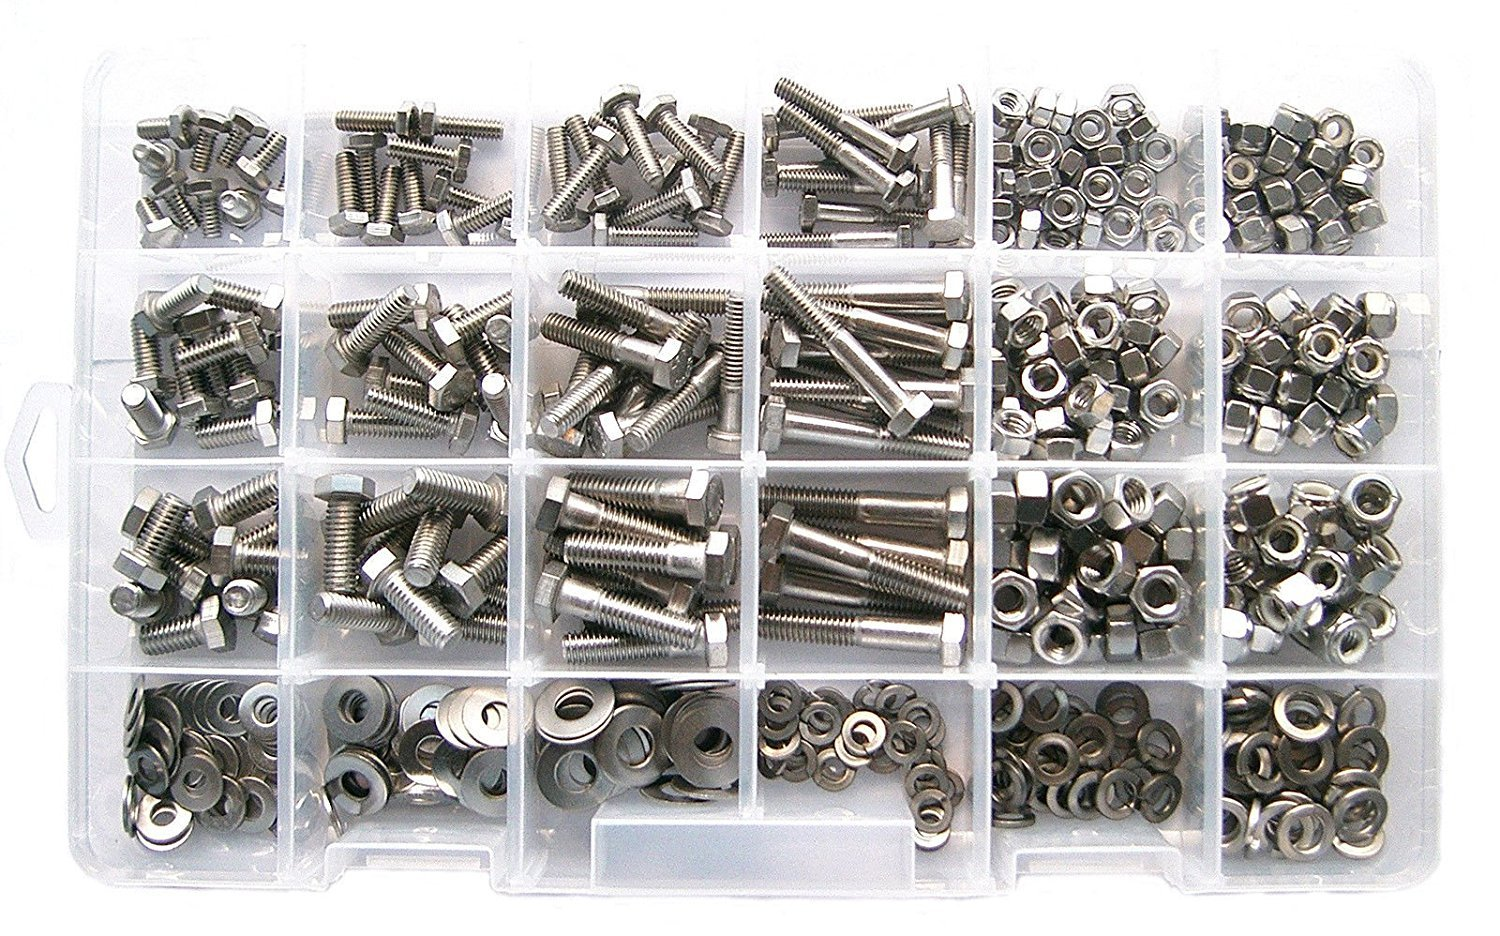 Generic ad Bolt (475 Piece Kit) r Kit Asso Assortment 5 Piece Stainless Steel er Kit Asso Hex Head Bolt s Steel Hex H Master Kit ss St